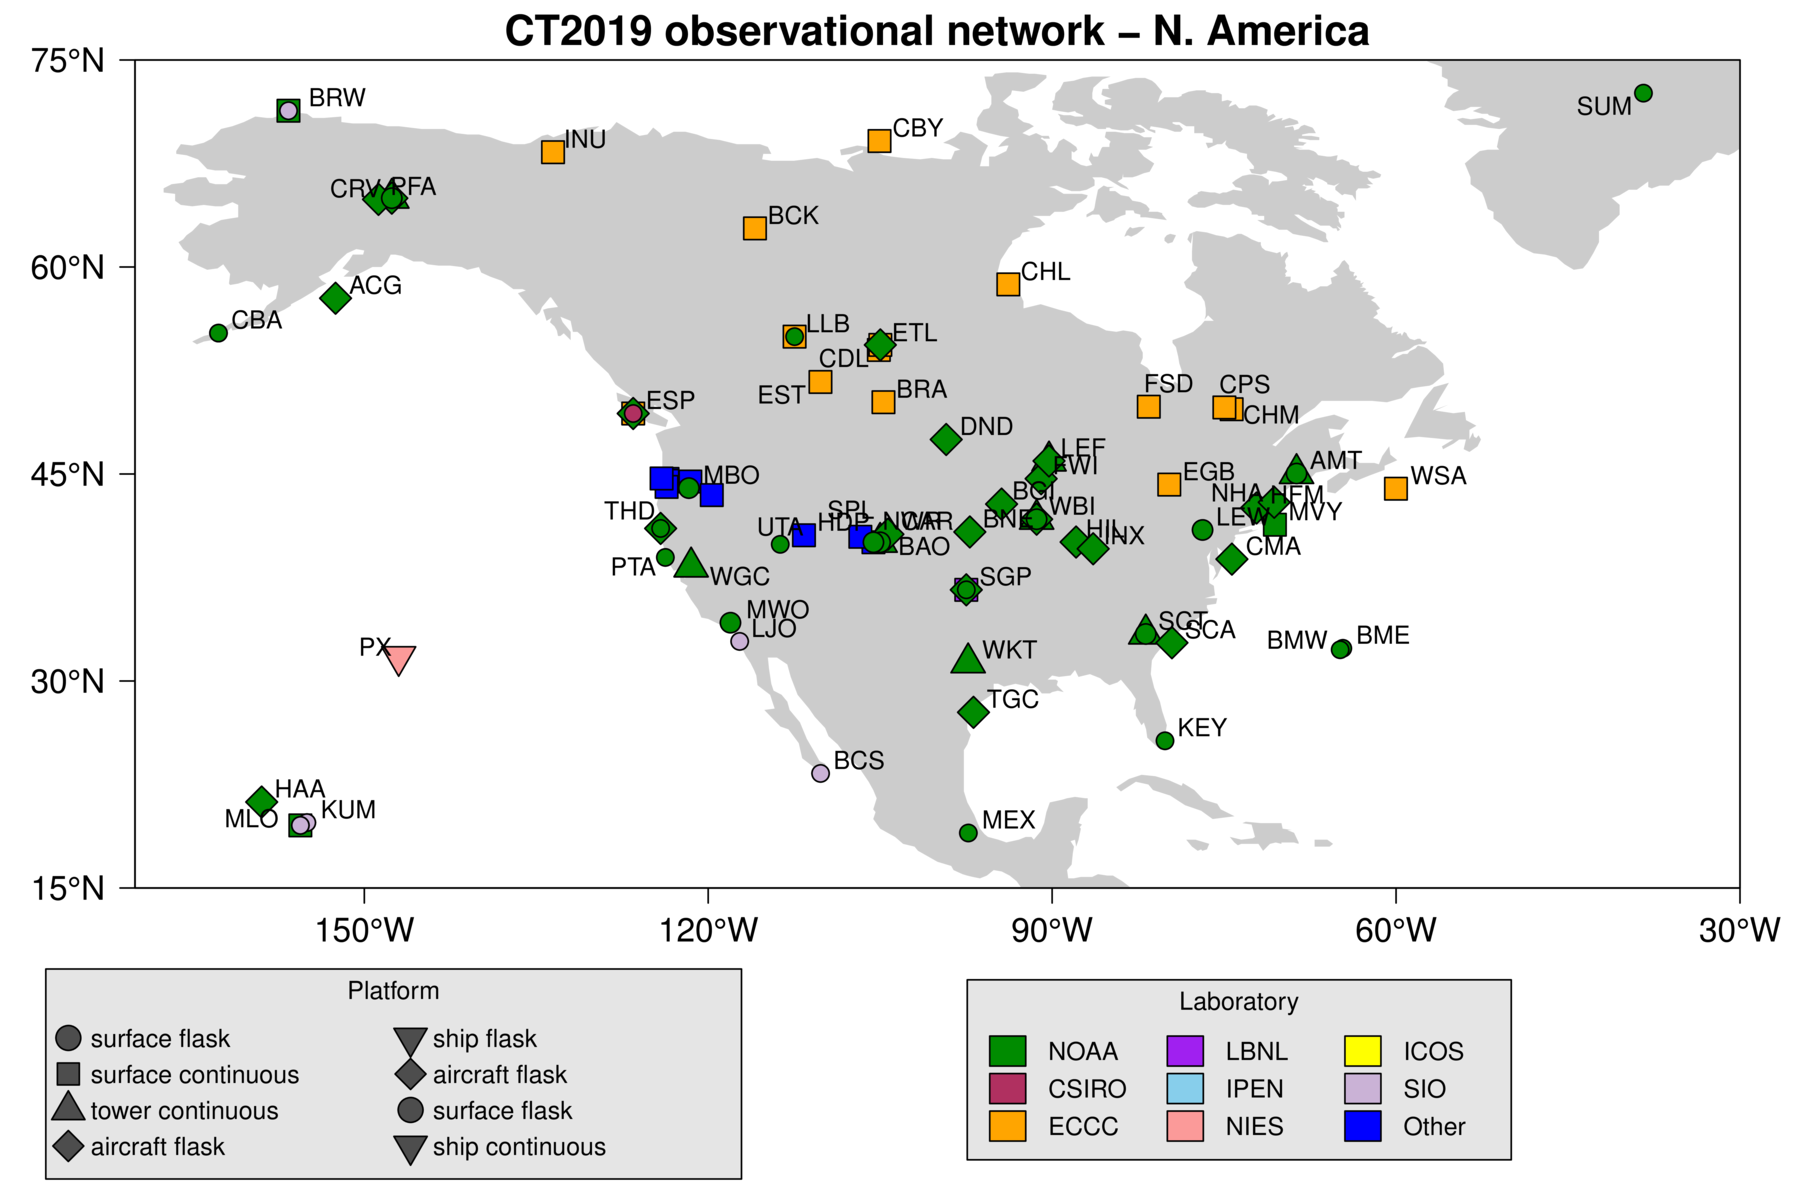 /gmd/webdata/ccgg/CT2019B/summary/network-nam.png